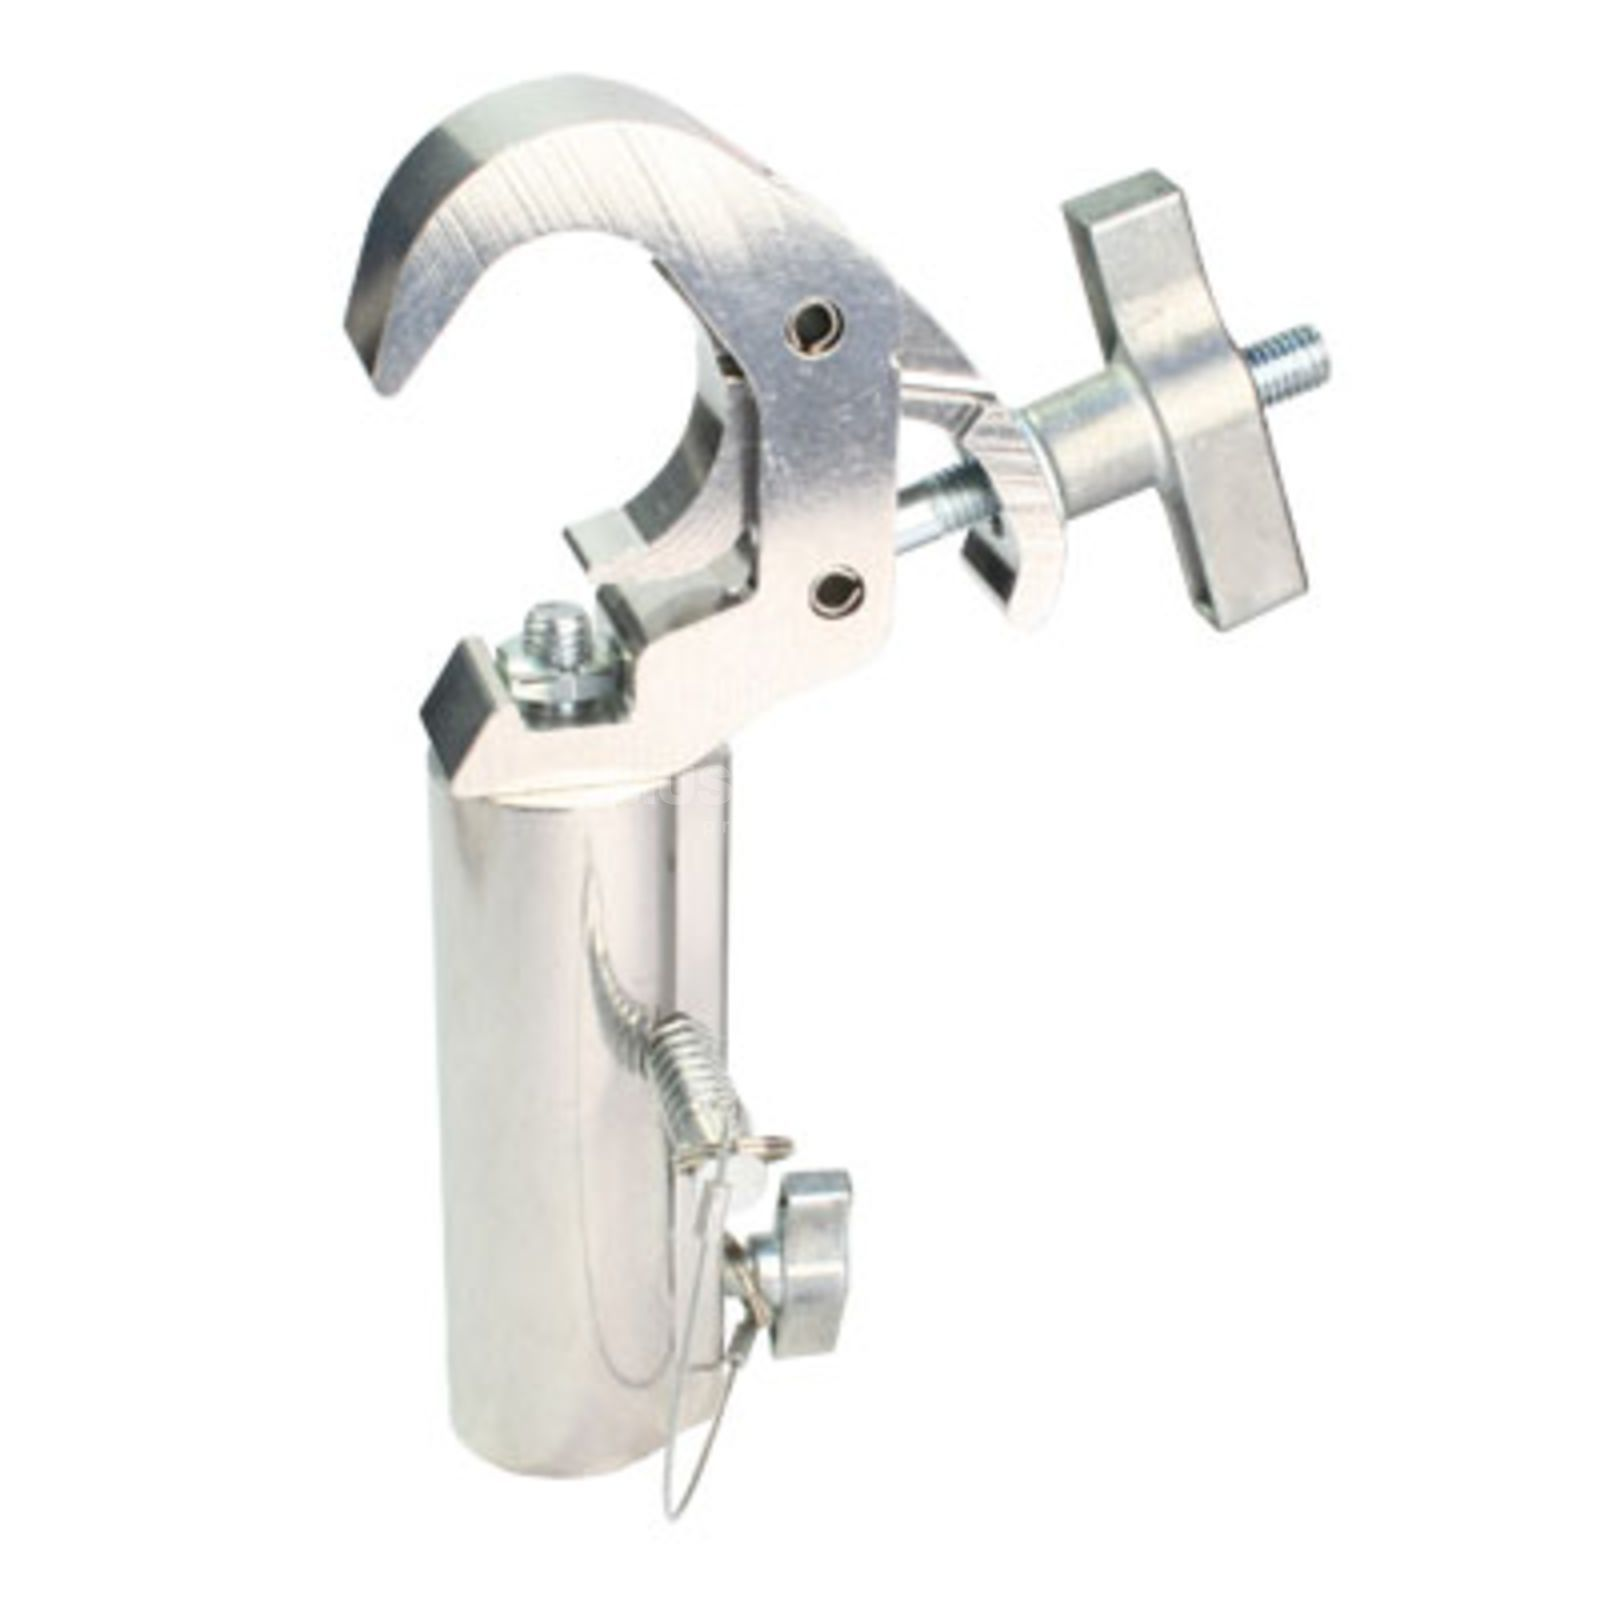 Doughty S/Line Quick Trigger TV-Clamp T58340, silver Produktbillede